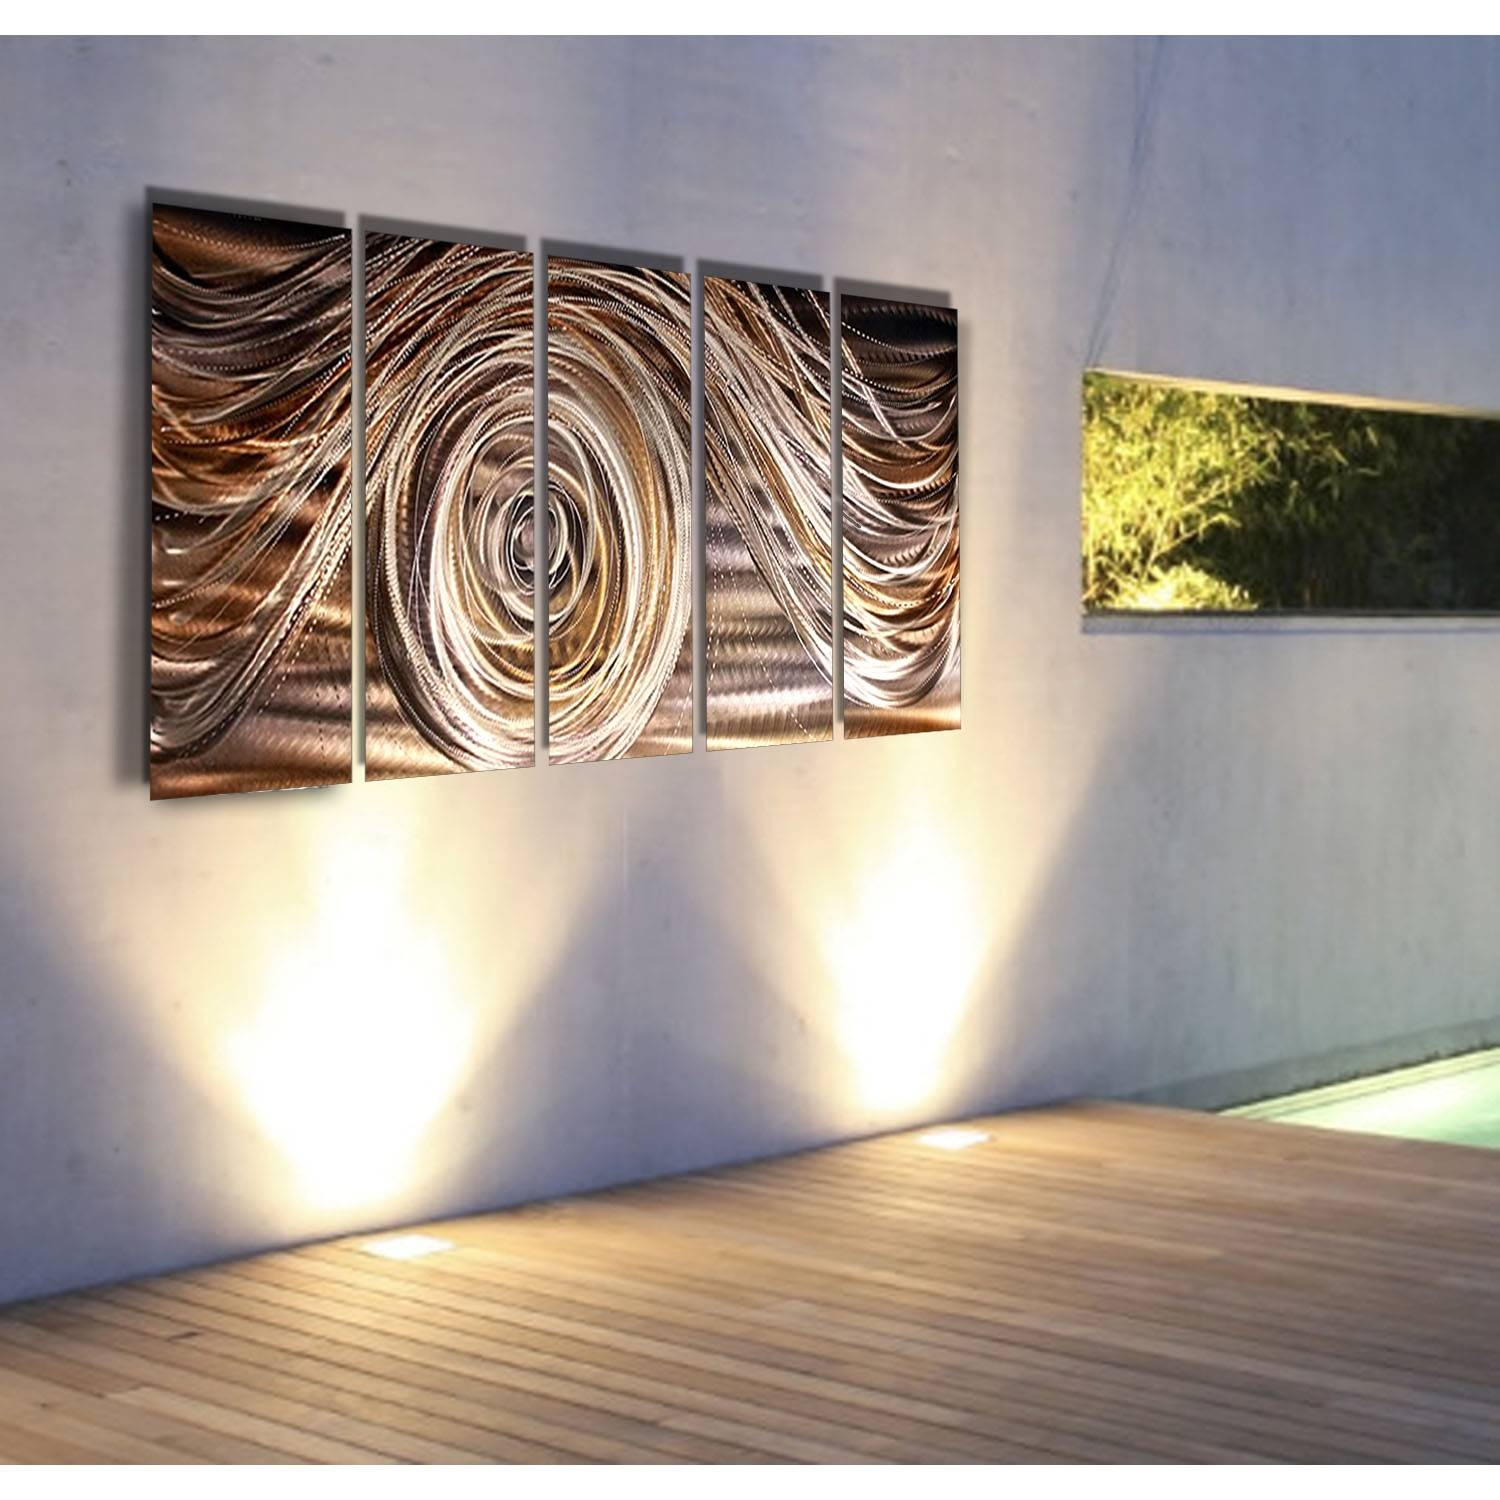 Mocha Swirl – Charcoal, Brown, Gold, And Silver Metal Wall Art – 5 With Newest Silver And Gold Wall Art (View 9 of 15)